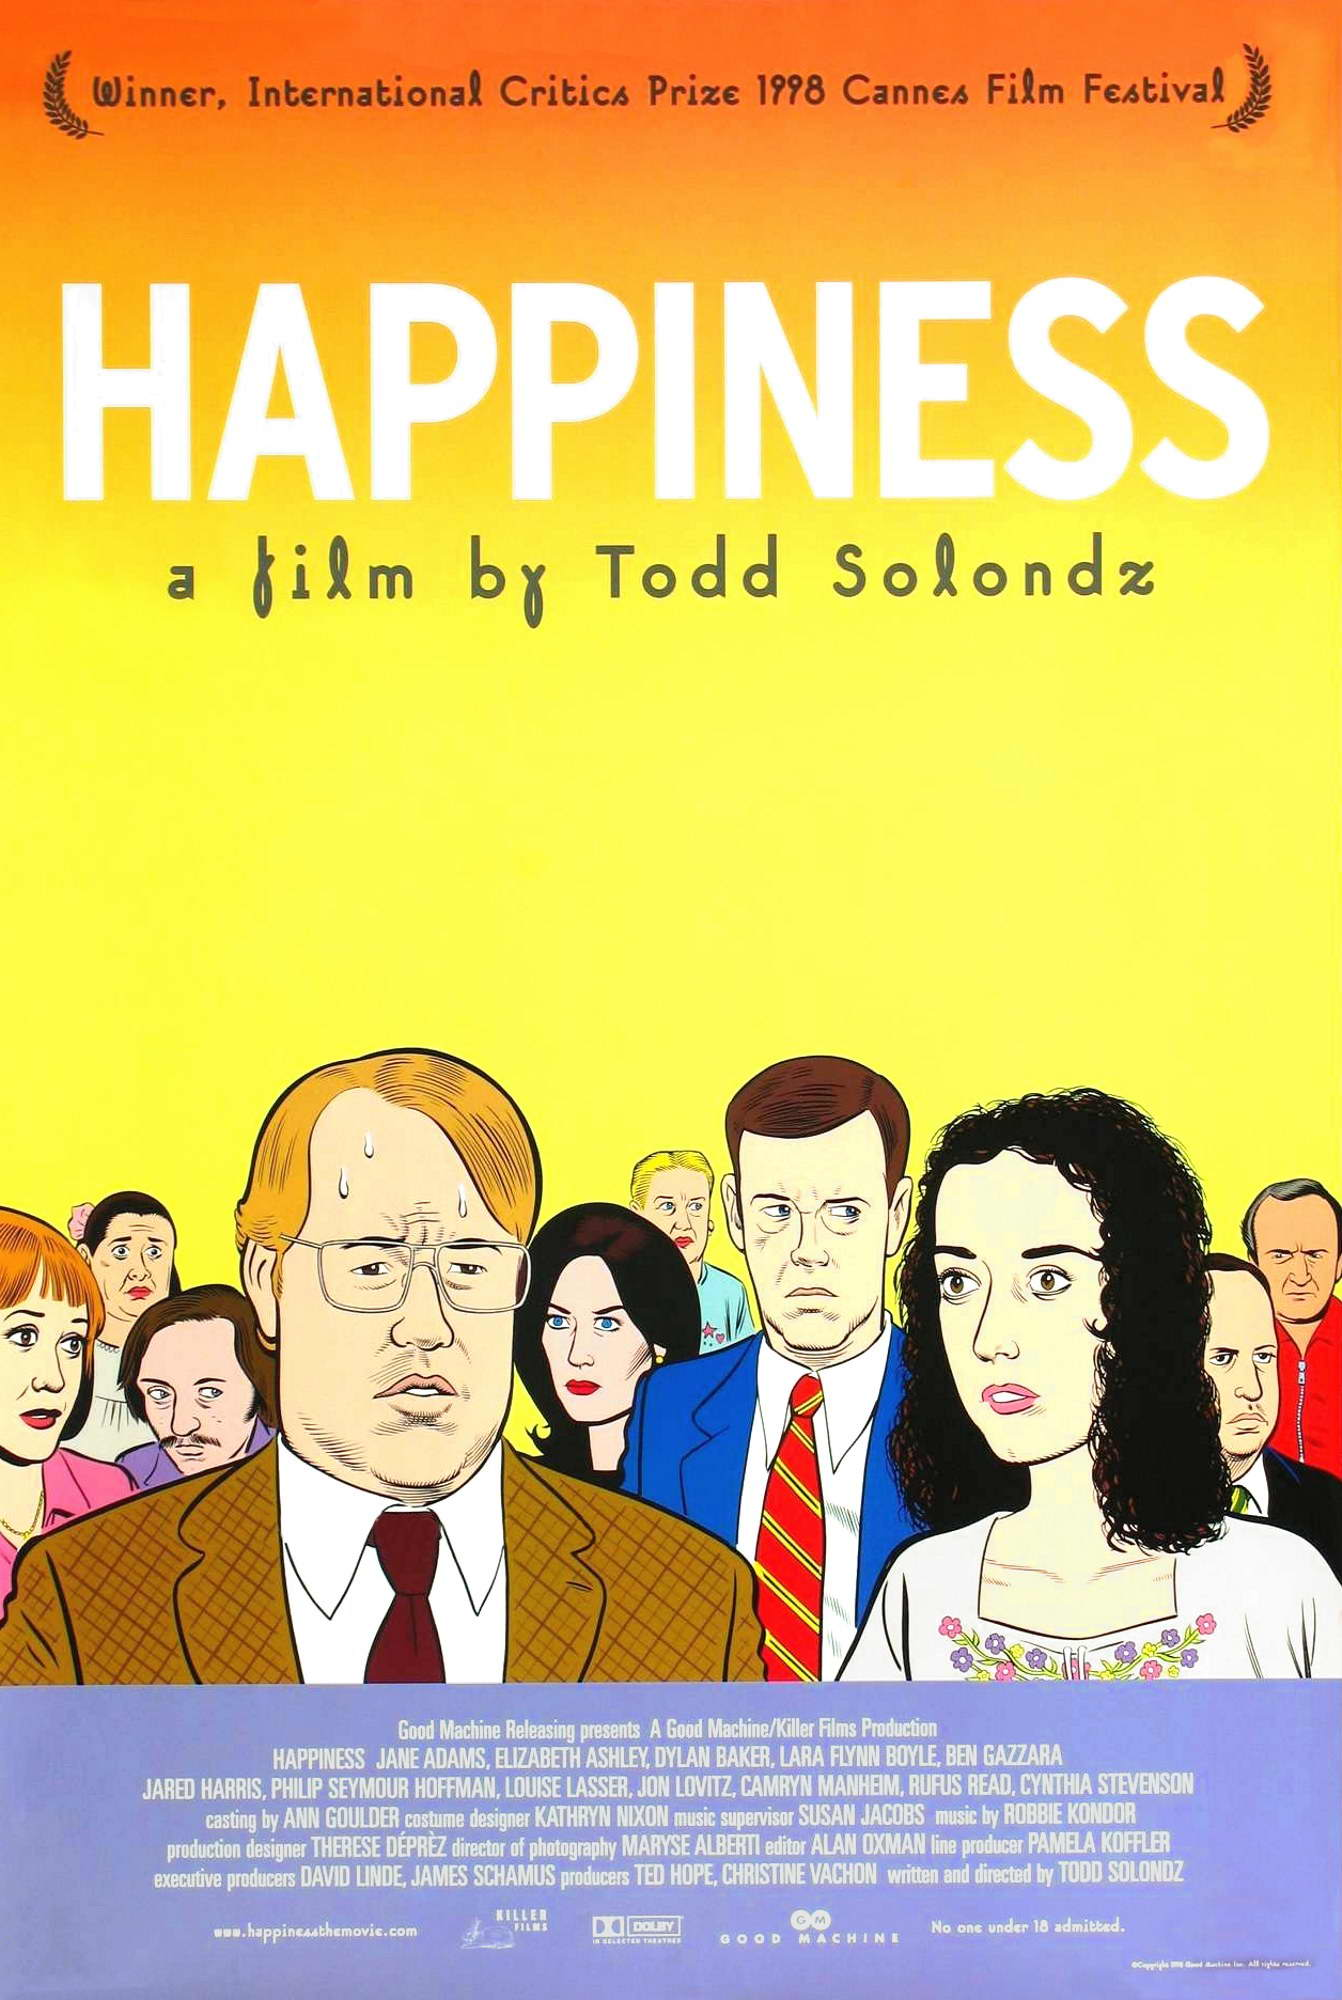 Happiness-a03bbd4d.jpg